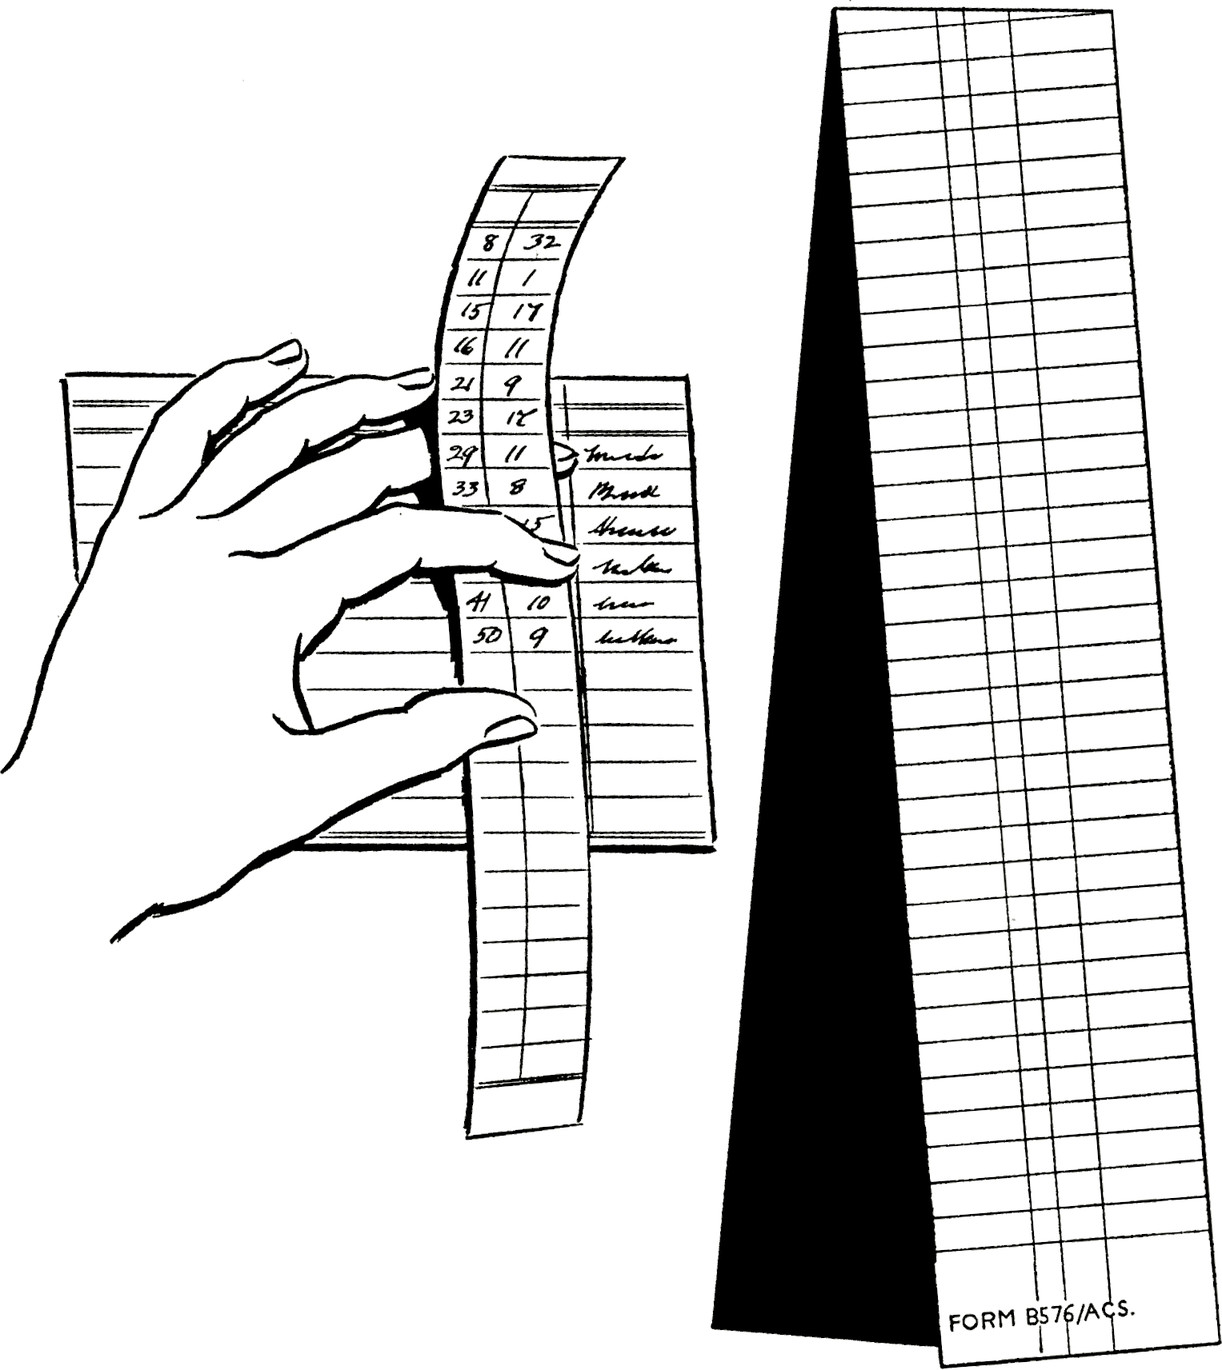 The carbon-coated posting strip provides a simple and inexpensive proof sheet for control purposes. Individual entries on the posting strip and separate accounting records are made in one writing operation. The totals on the posting strip provide control figures to prove posting both the correct amount and the correct account